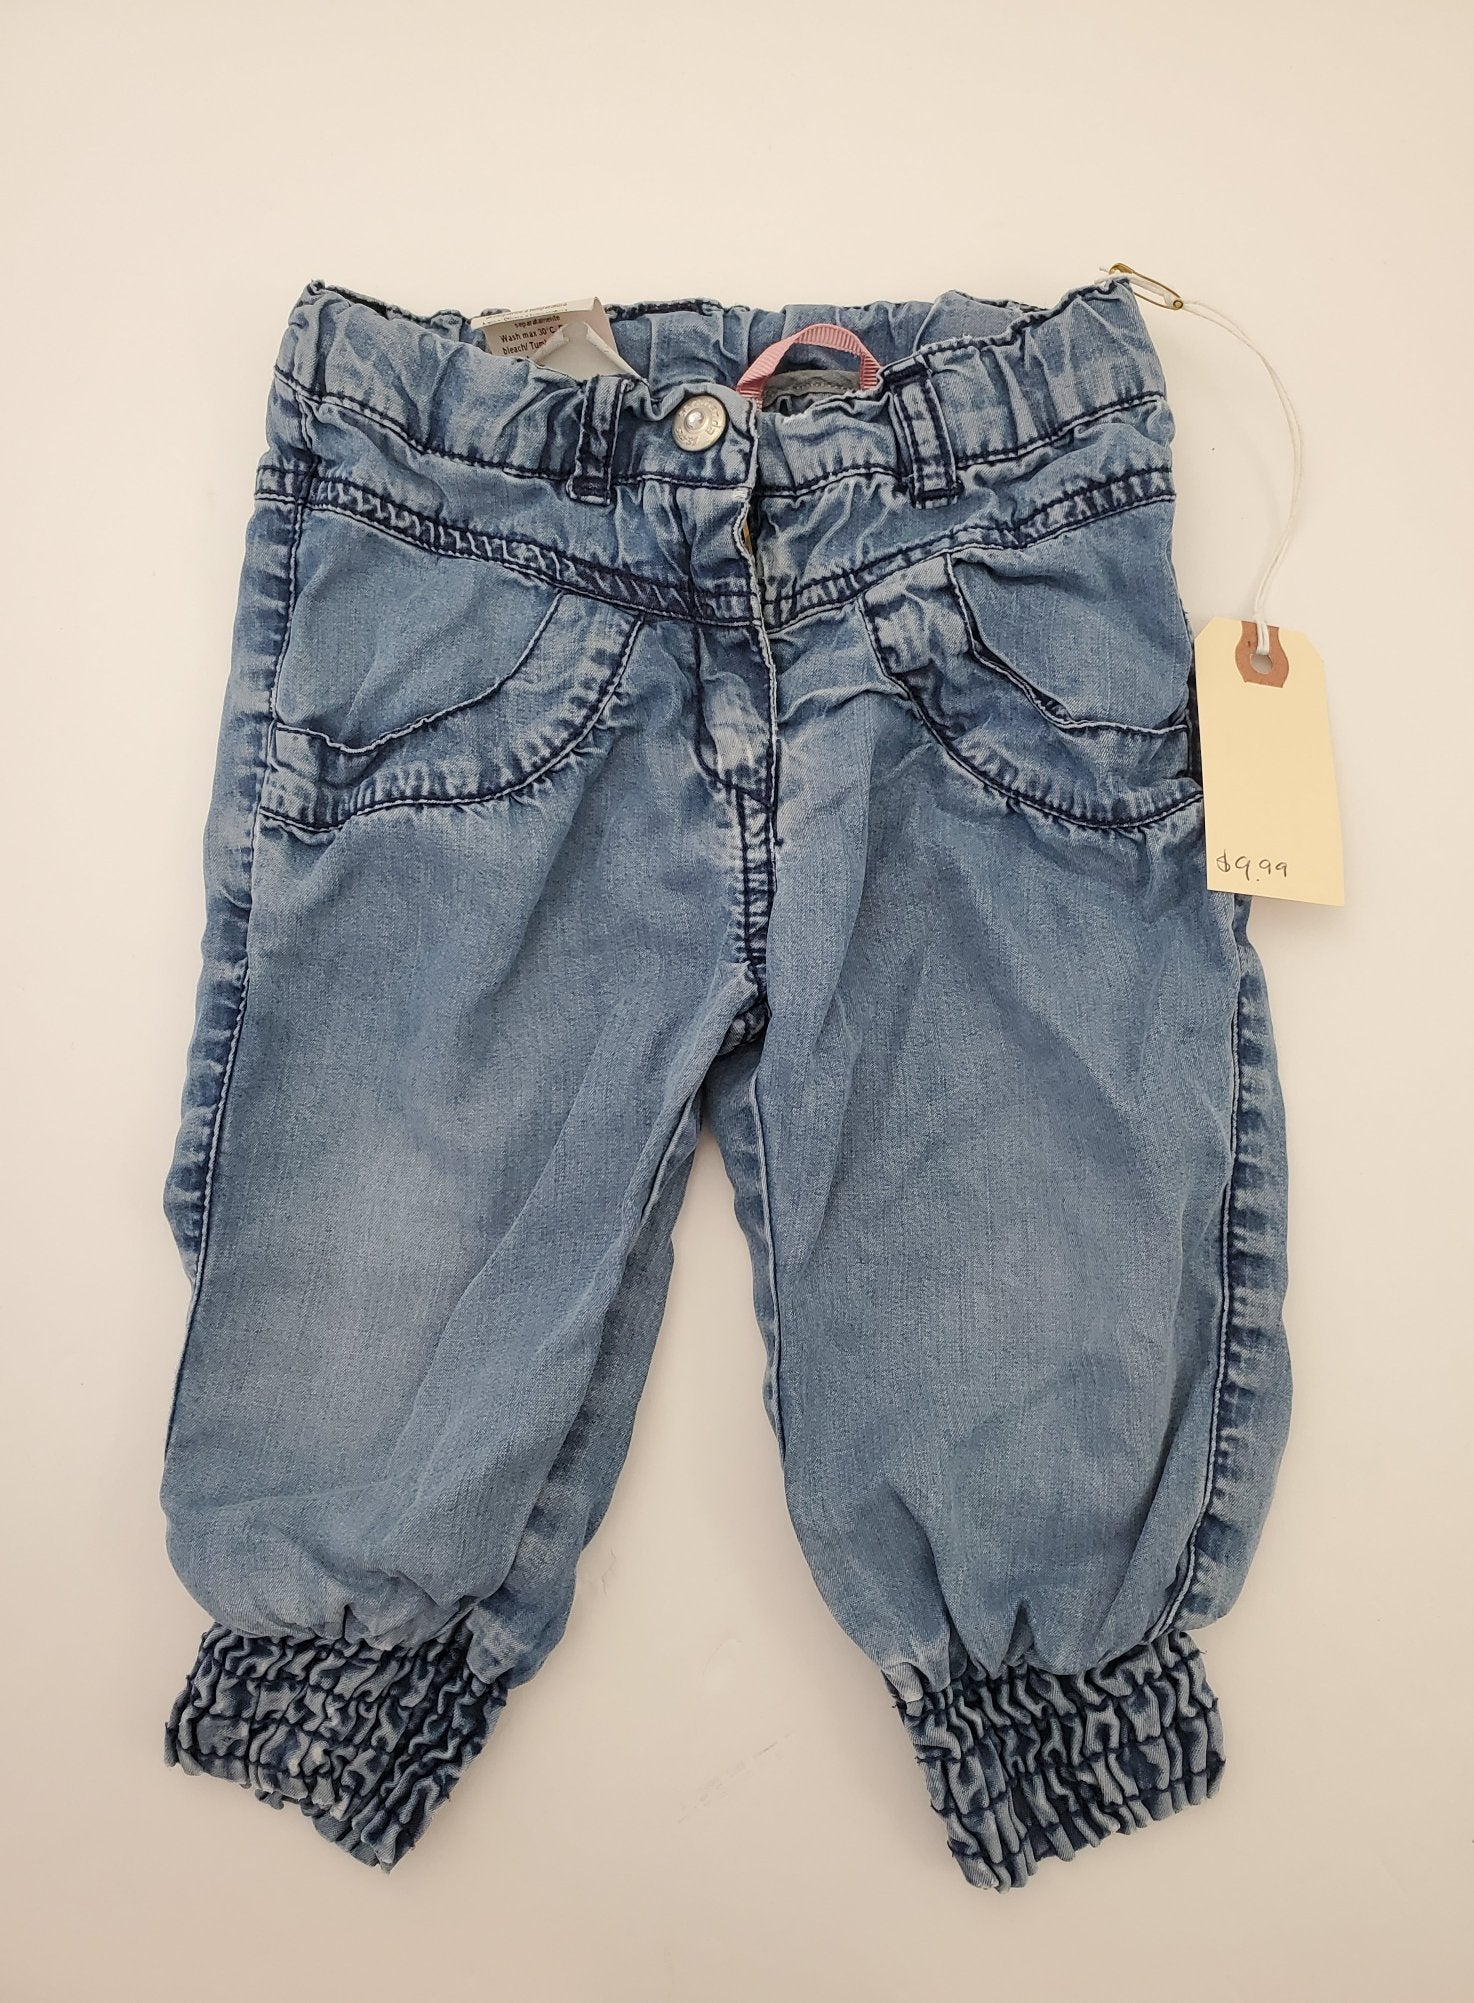 Resale 9m Sarahanda Denim Joggers